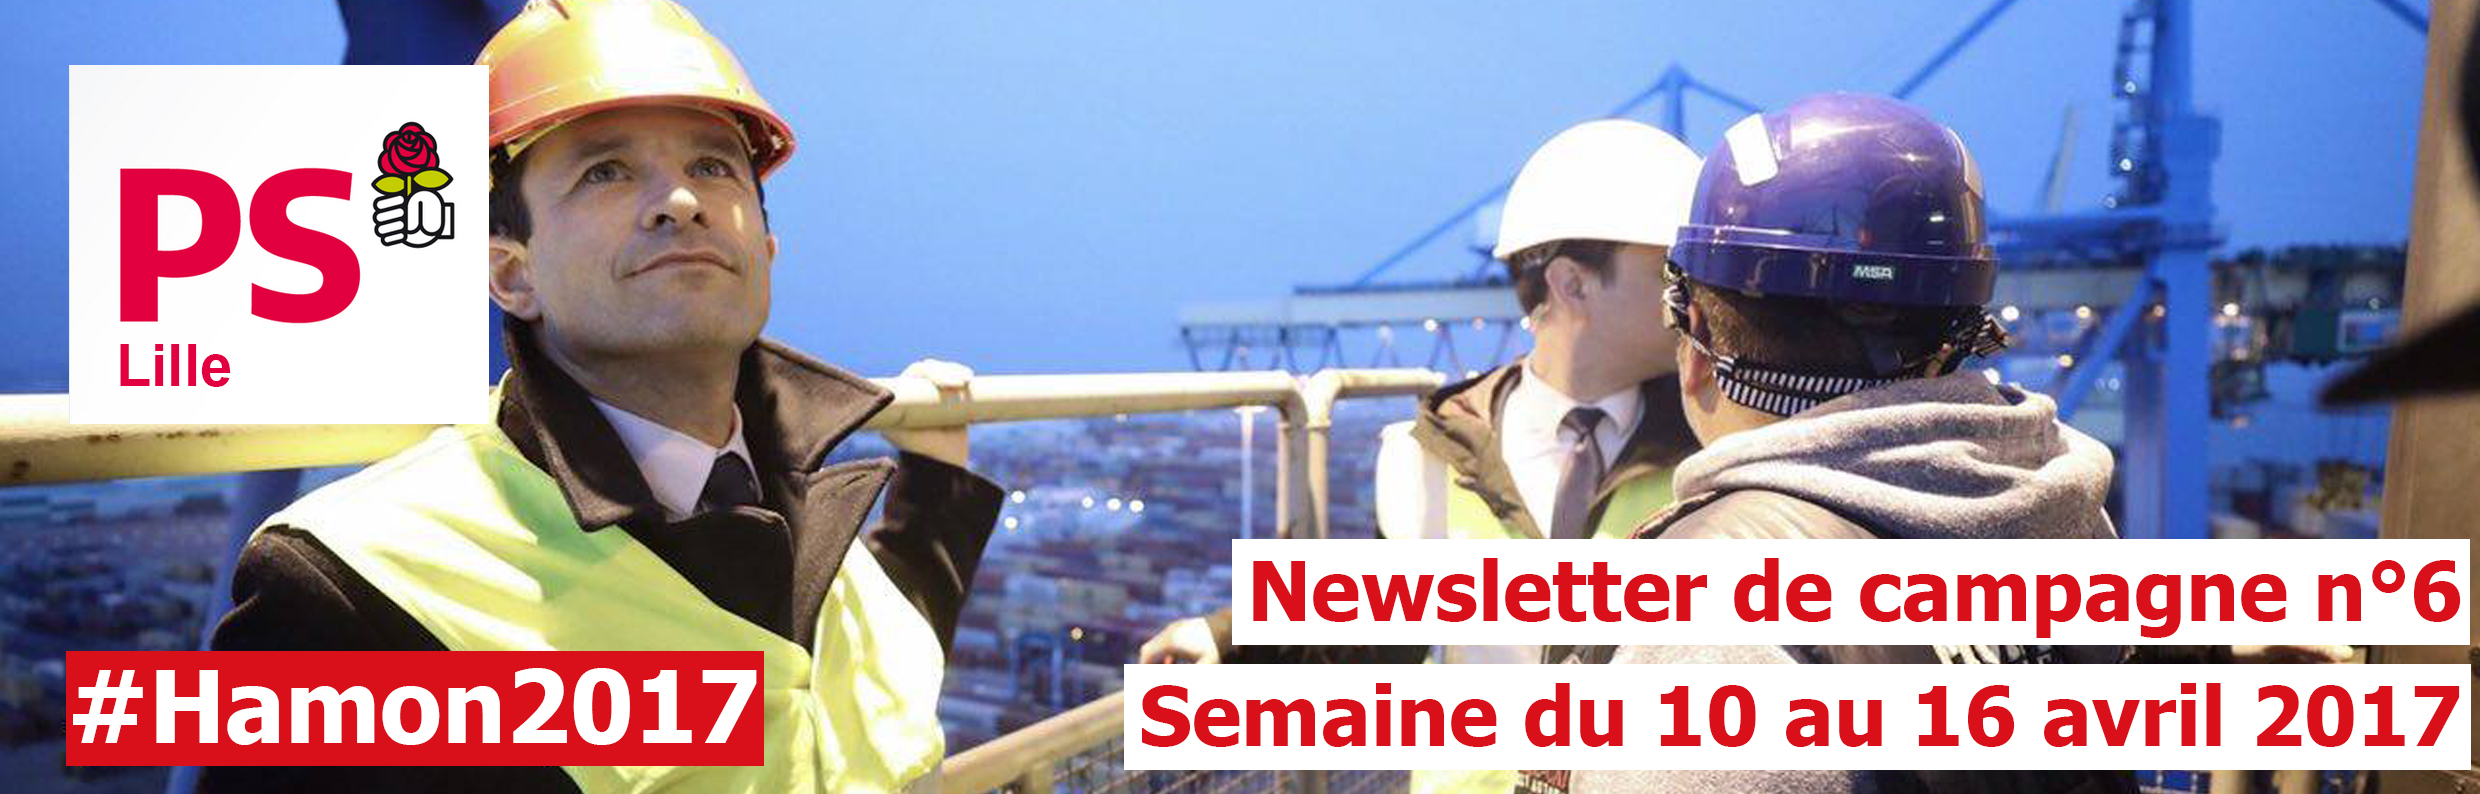 Newsletter n°6 - bandeau